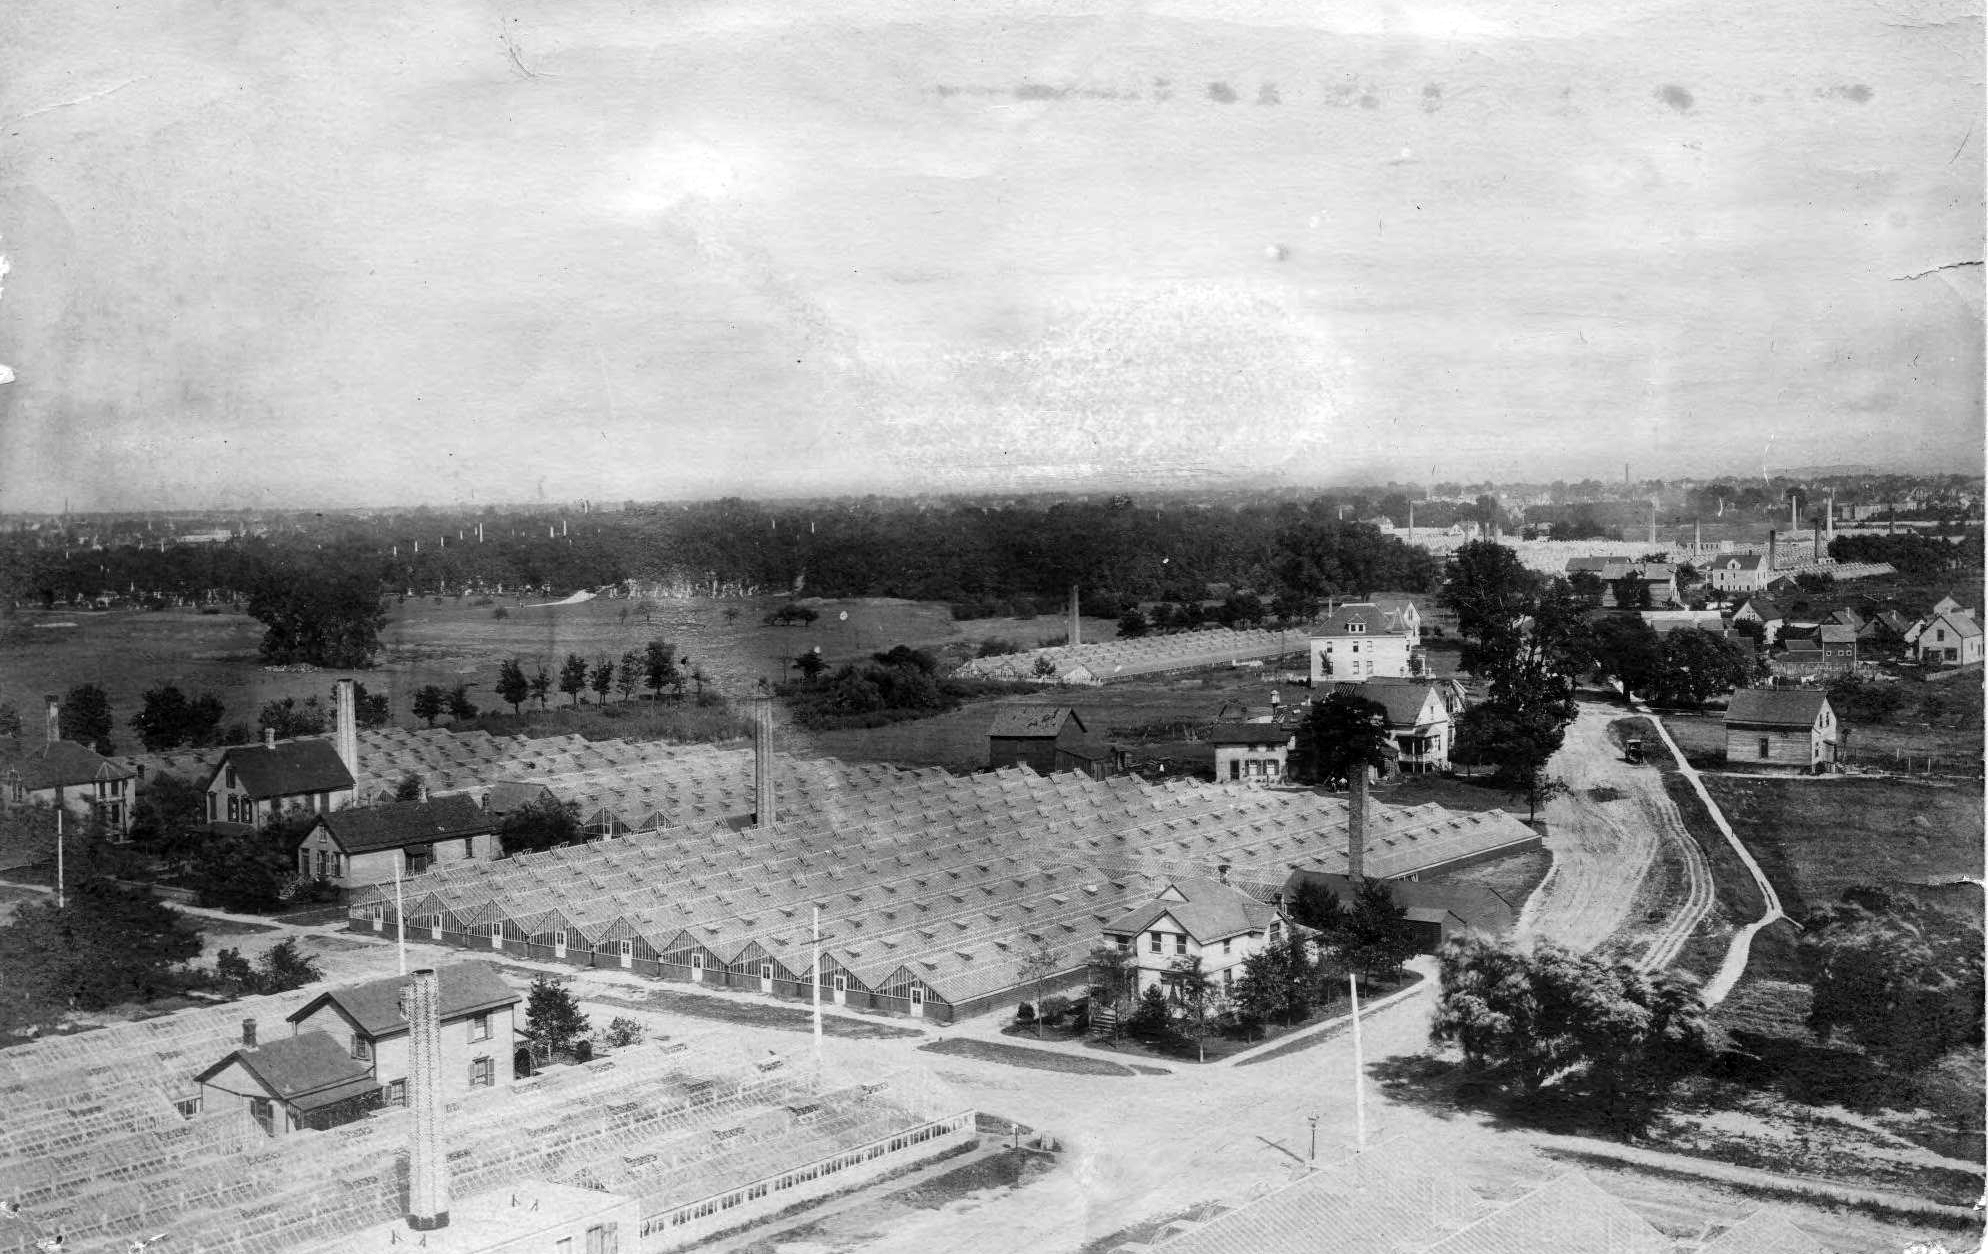 J.A. Budlong's greenhouses in Bowmanville covered an expanse of land near Foster and Lincoln Avenues in the Lincoln Square neighborhood. (Courtesy Sulzer Library)